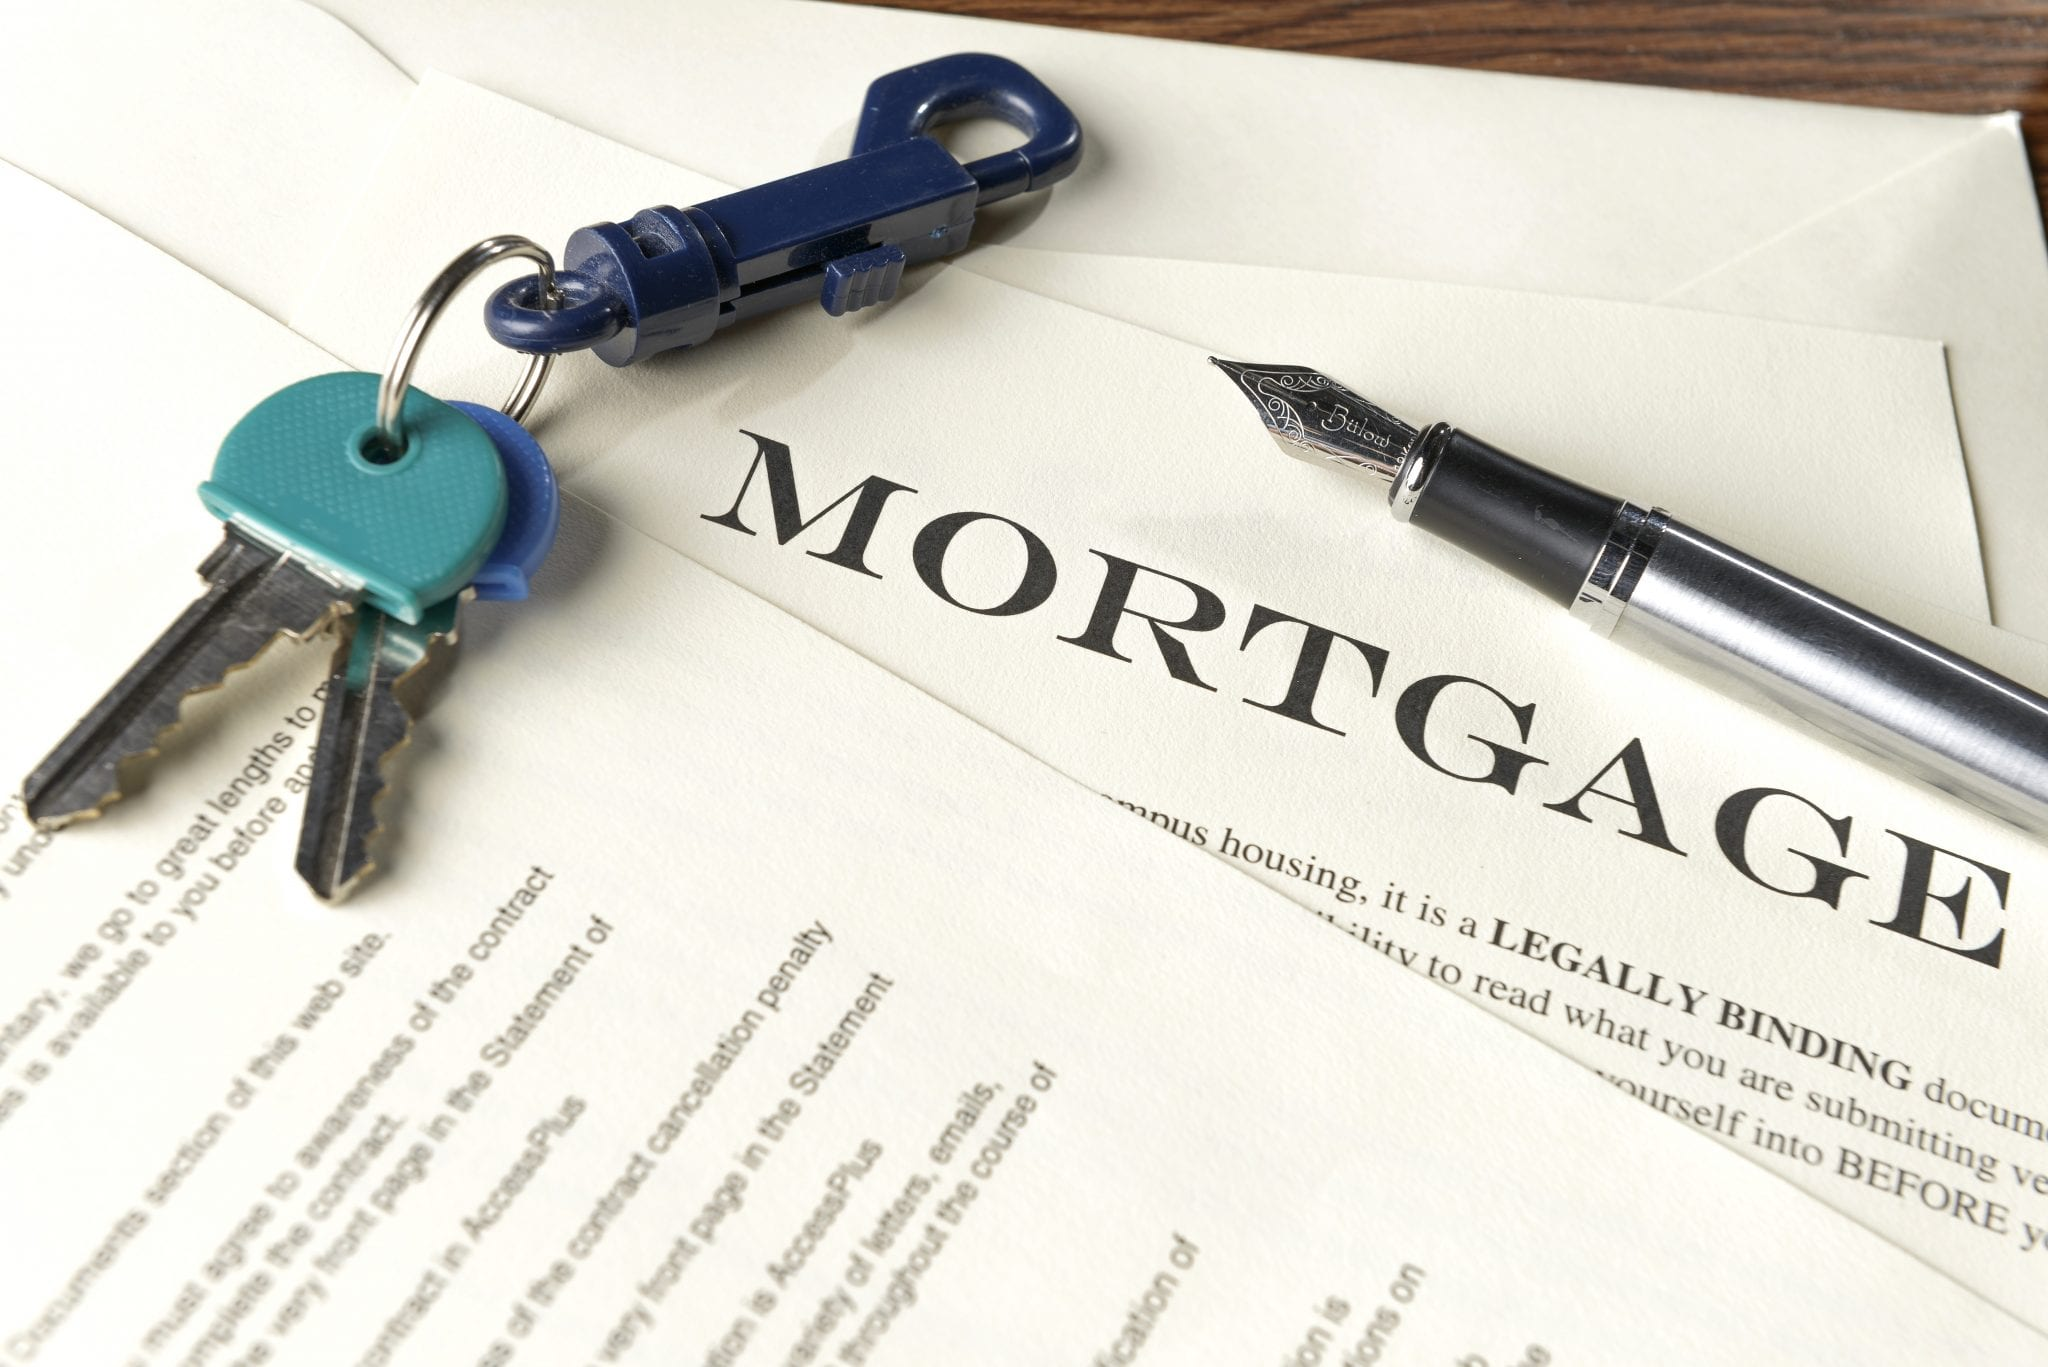 Mortgage note on table with house keys and pen.